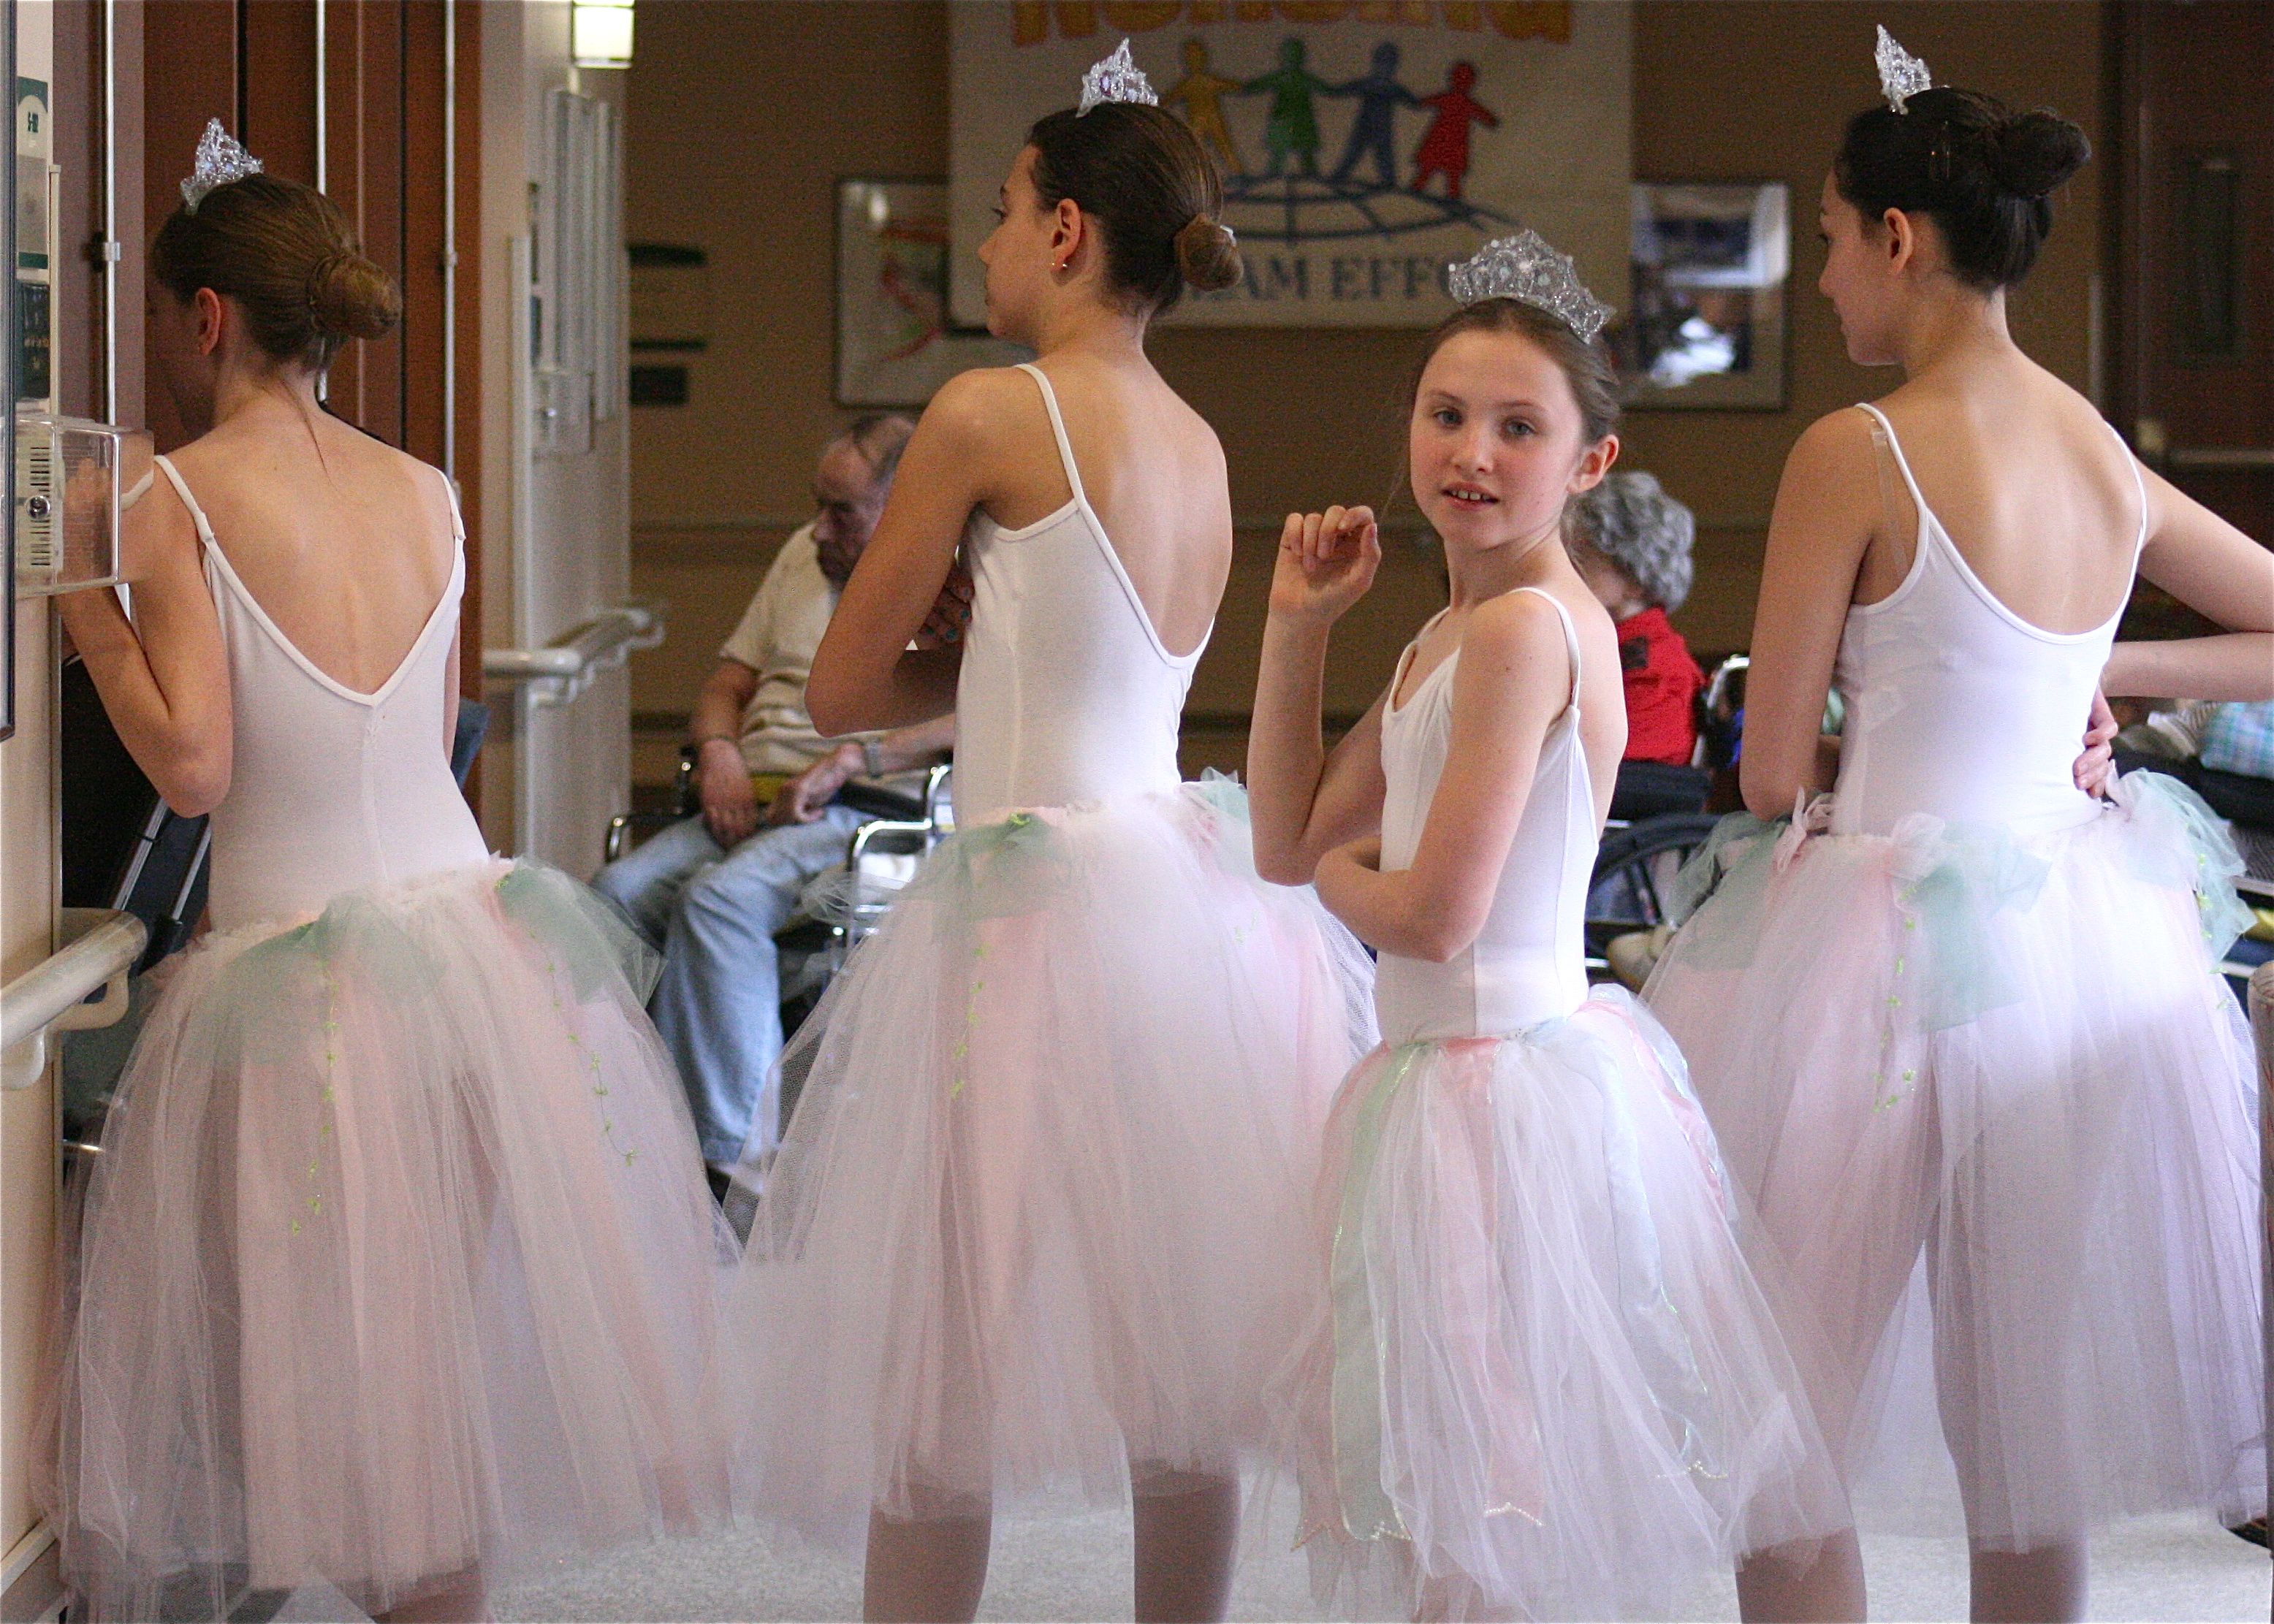 Nutcracker - backstage